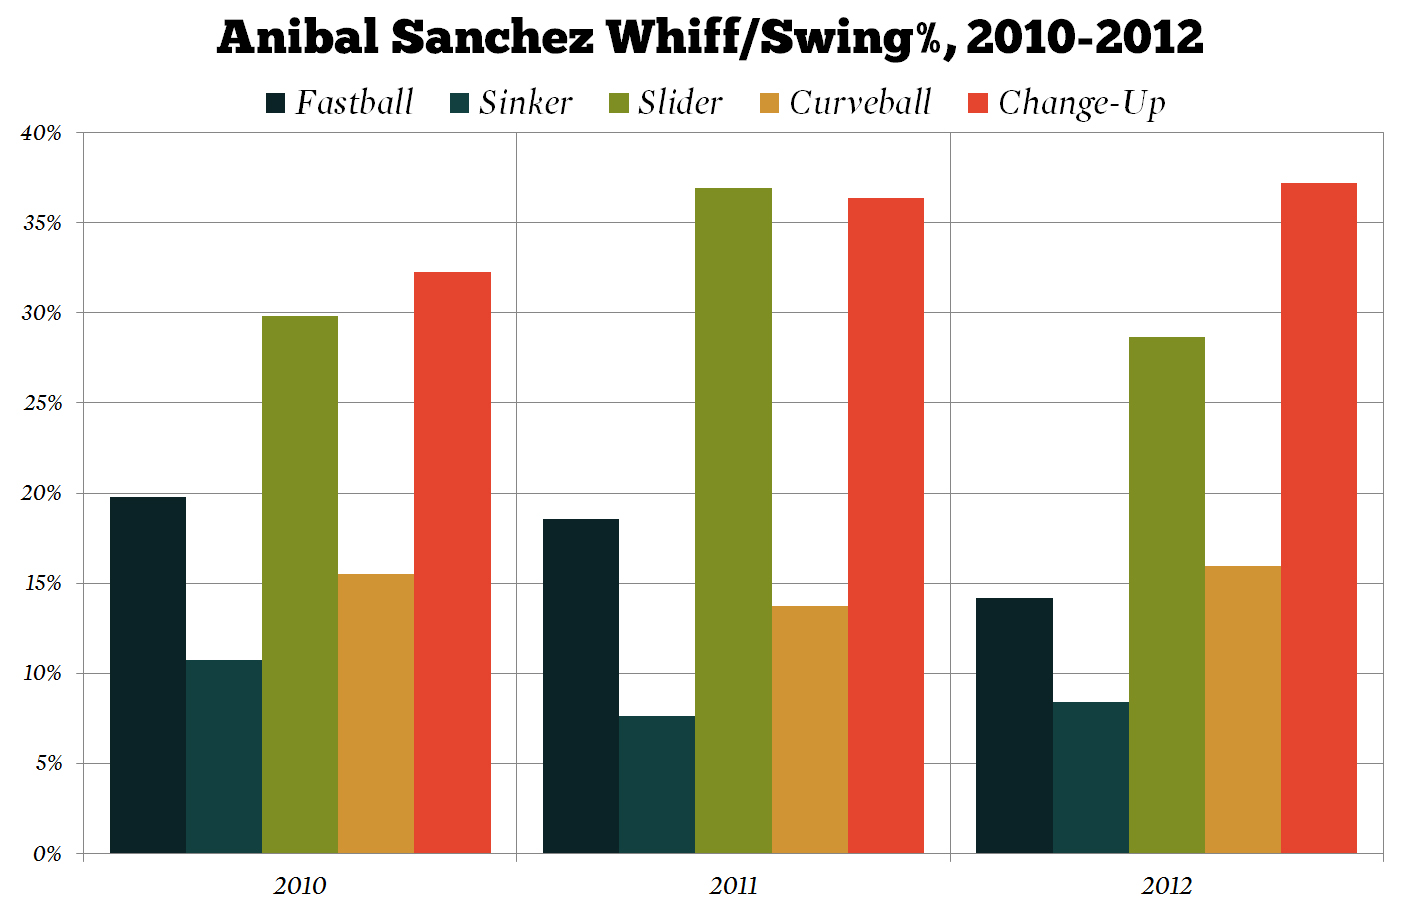 Anibal_sanchez_whiff-swing_percentage_medium